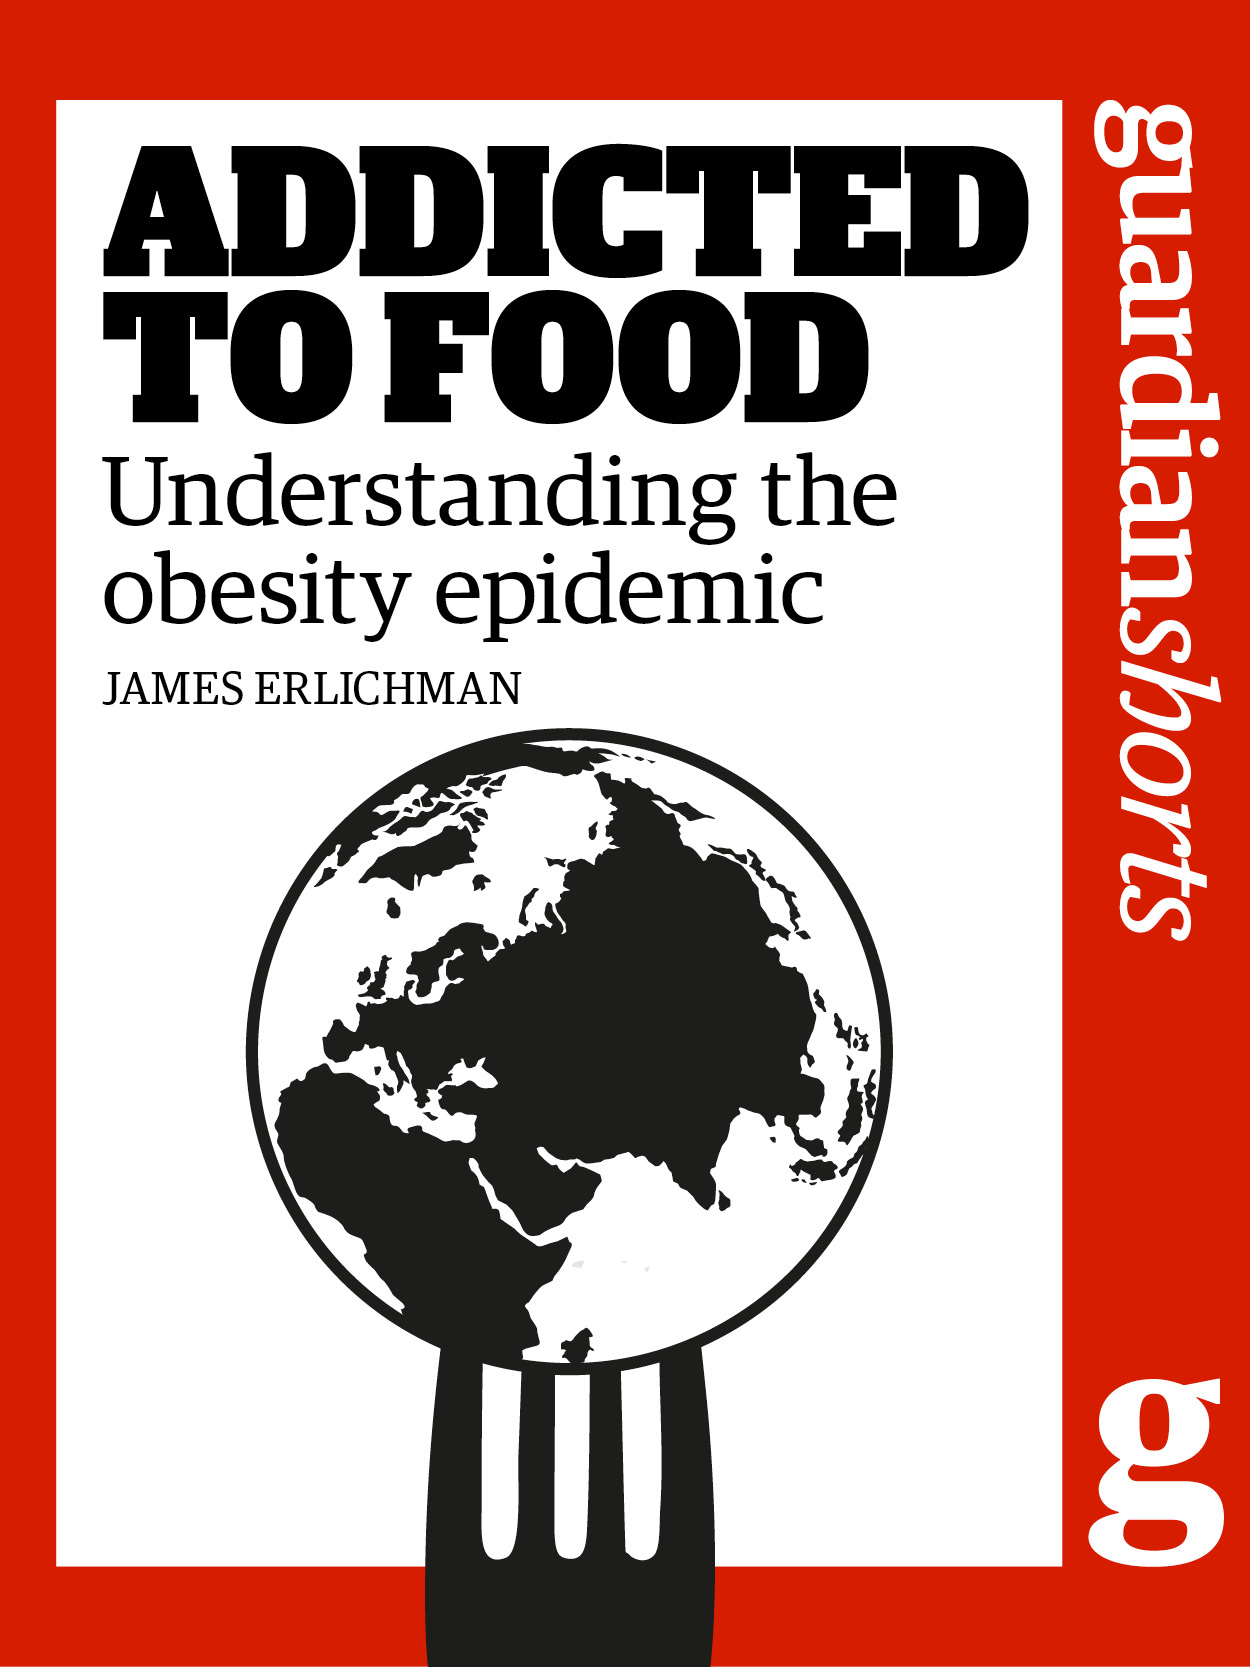 Addicted to Food Understanding the global obesity epidemic